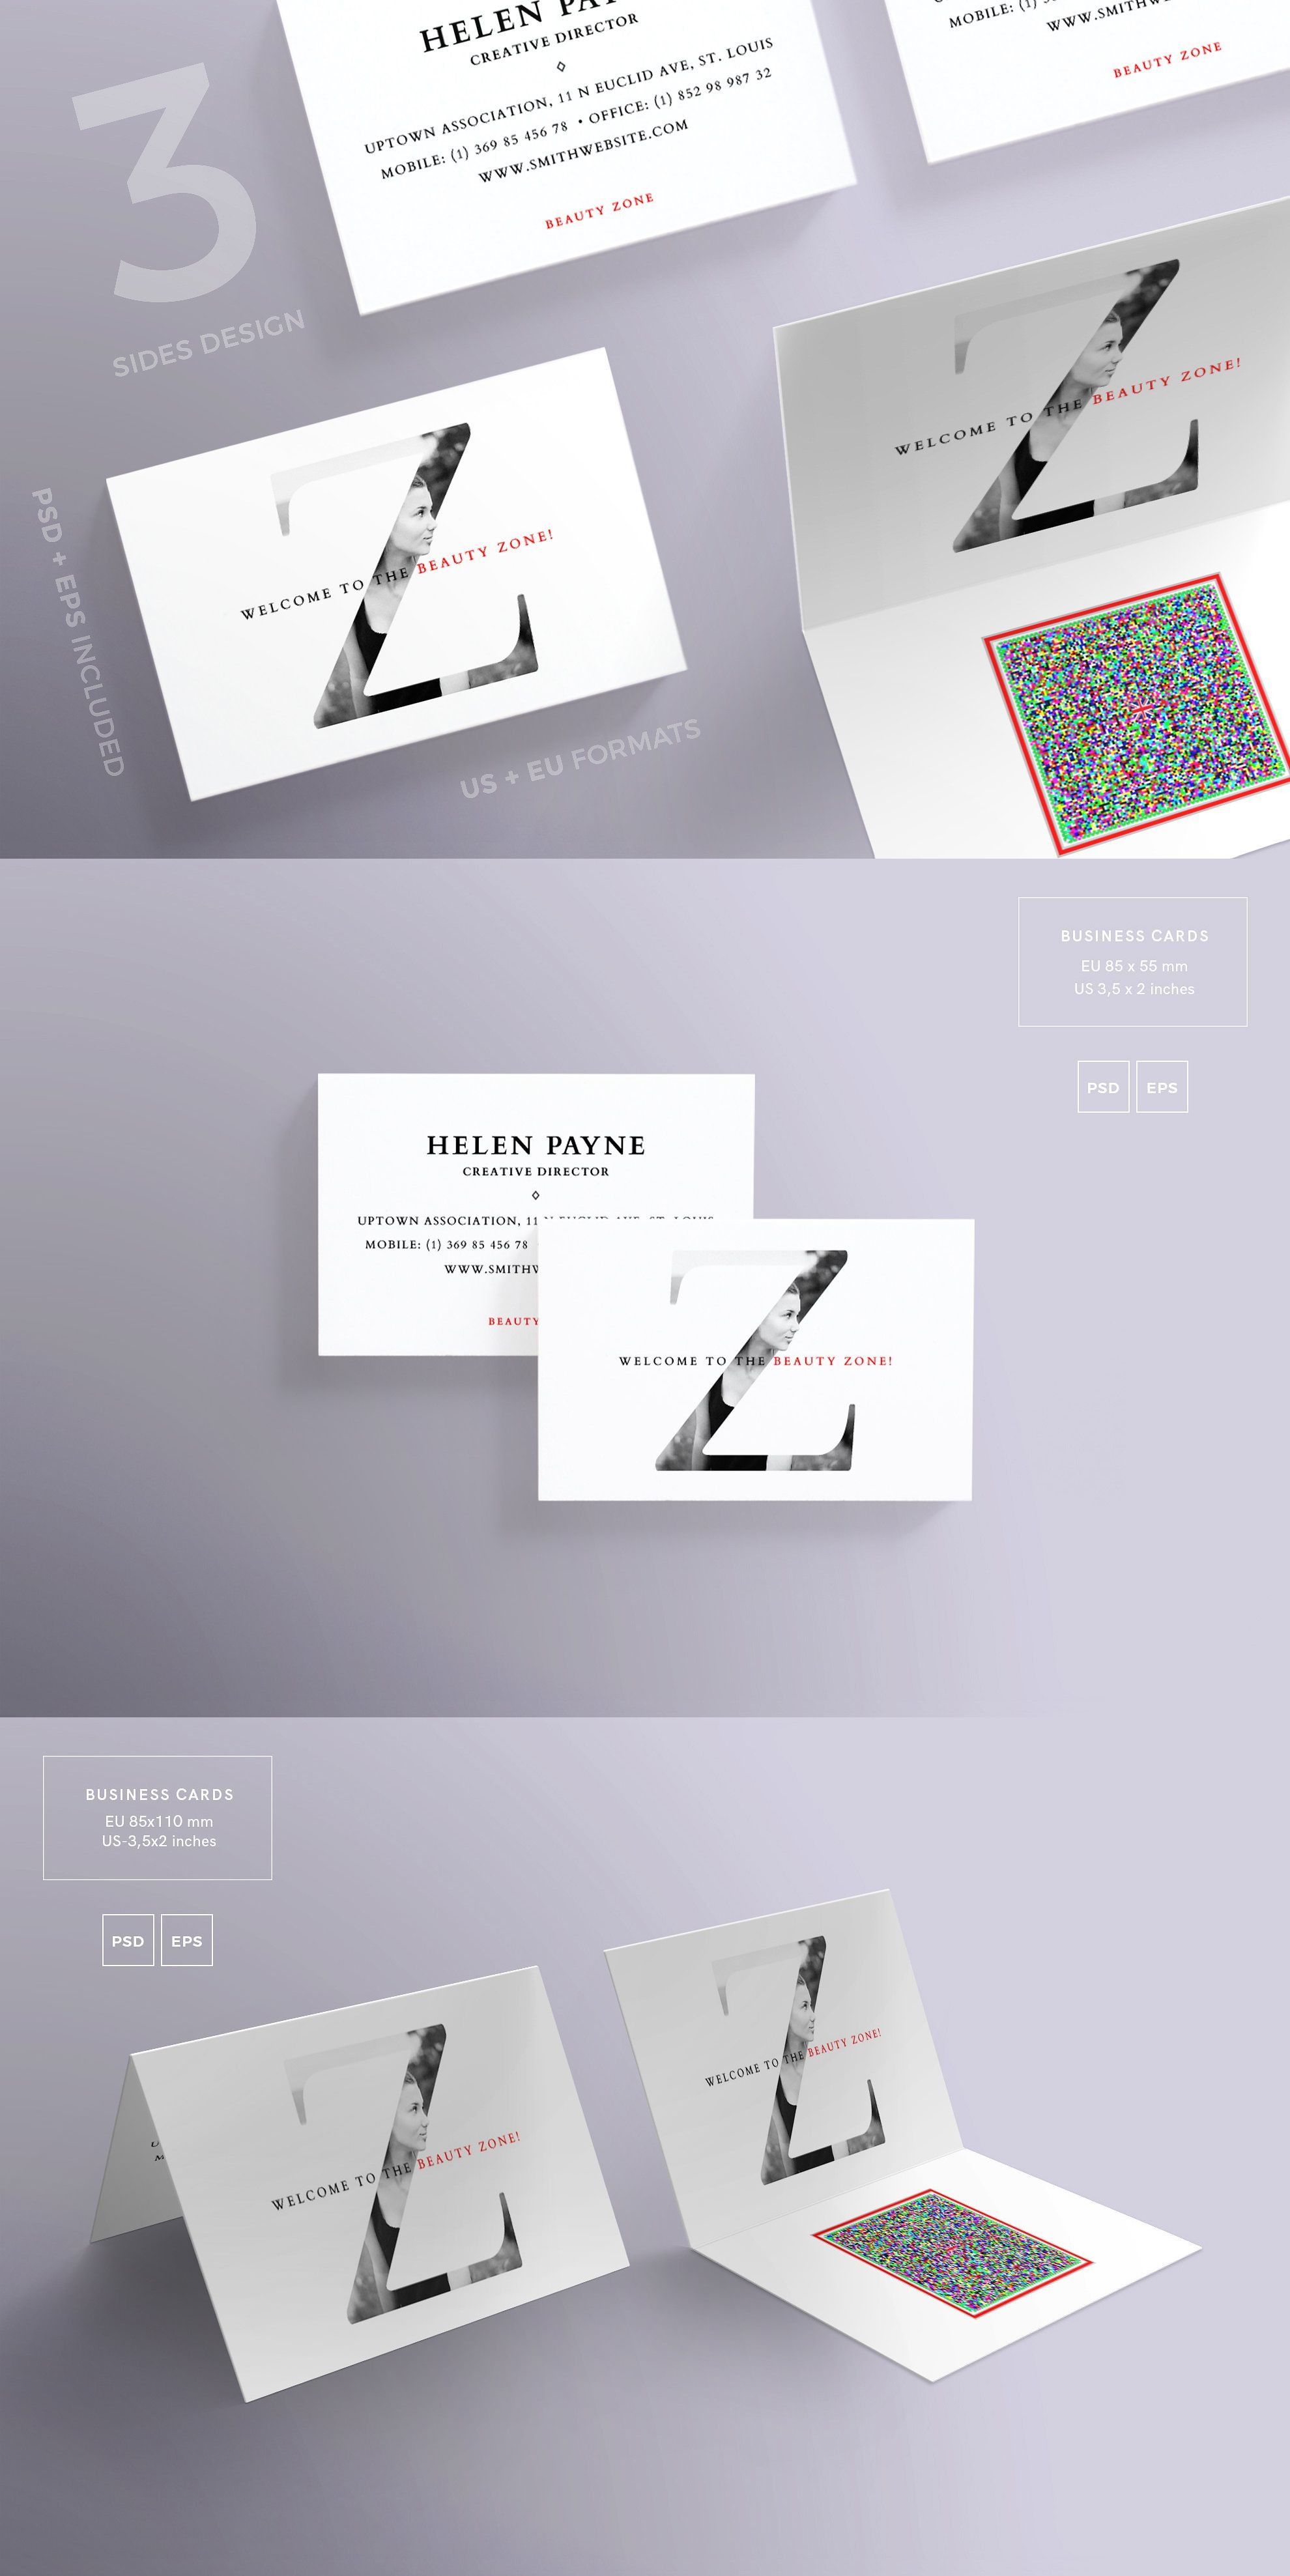 Business cards templates beauty zone psd eps pdf business business cards templates beauty zone psd eps pdf alramifo Gallery